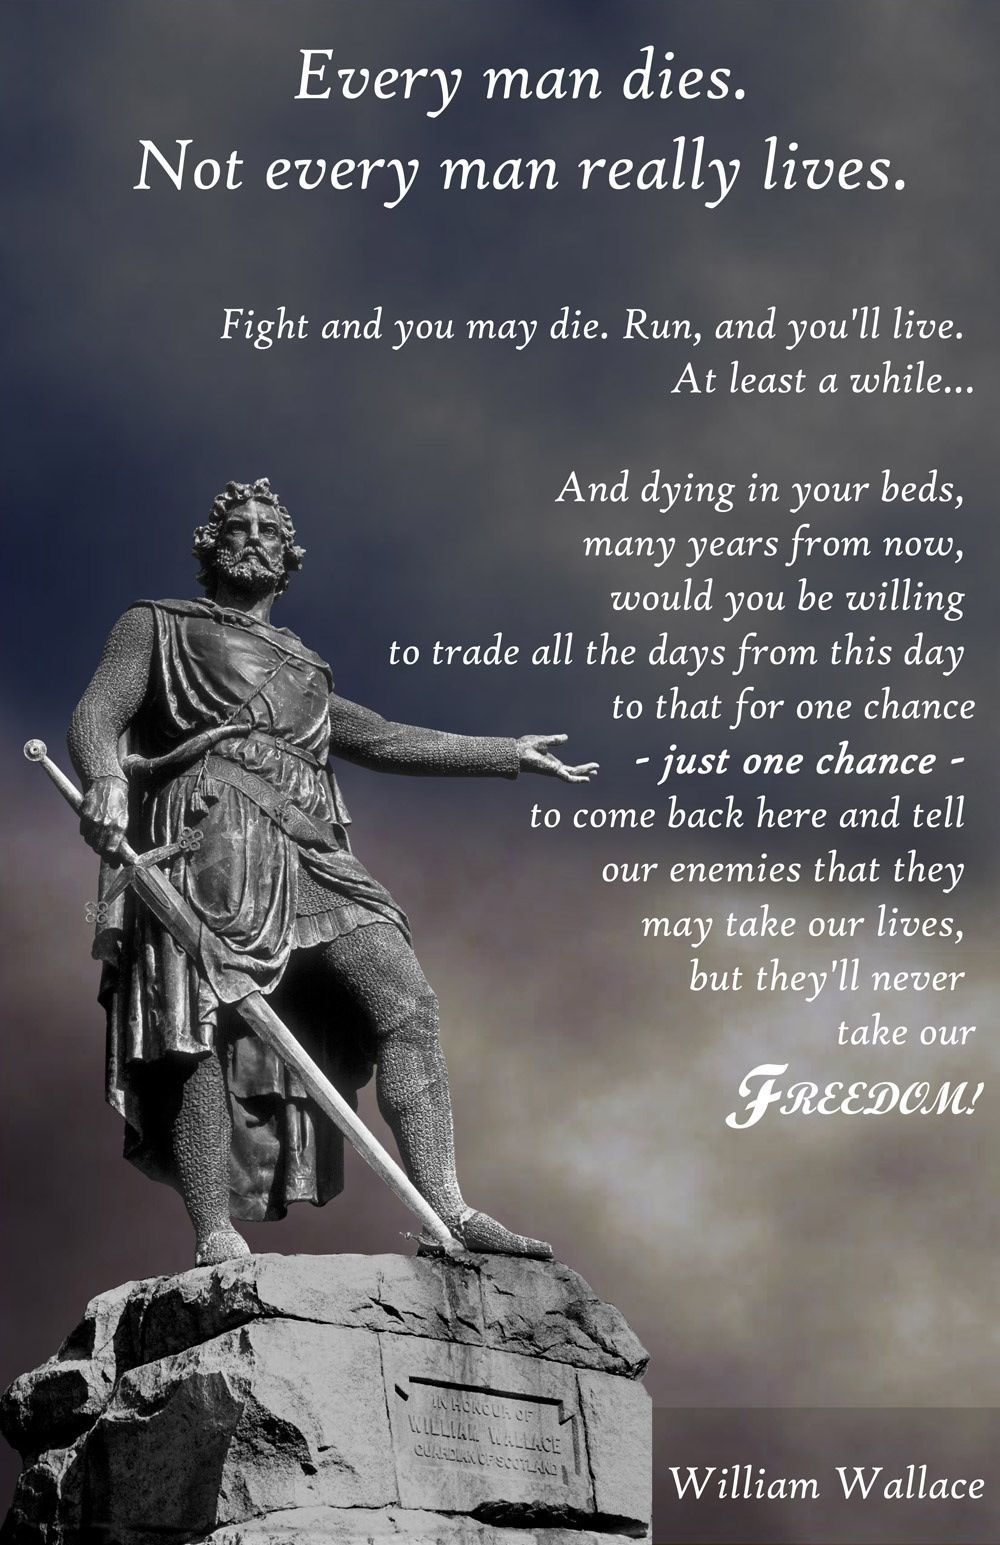 William Wallace, from Braveheart. It is highly unlikely that Wallace ever said this, but it's still a very inspiring quote.